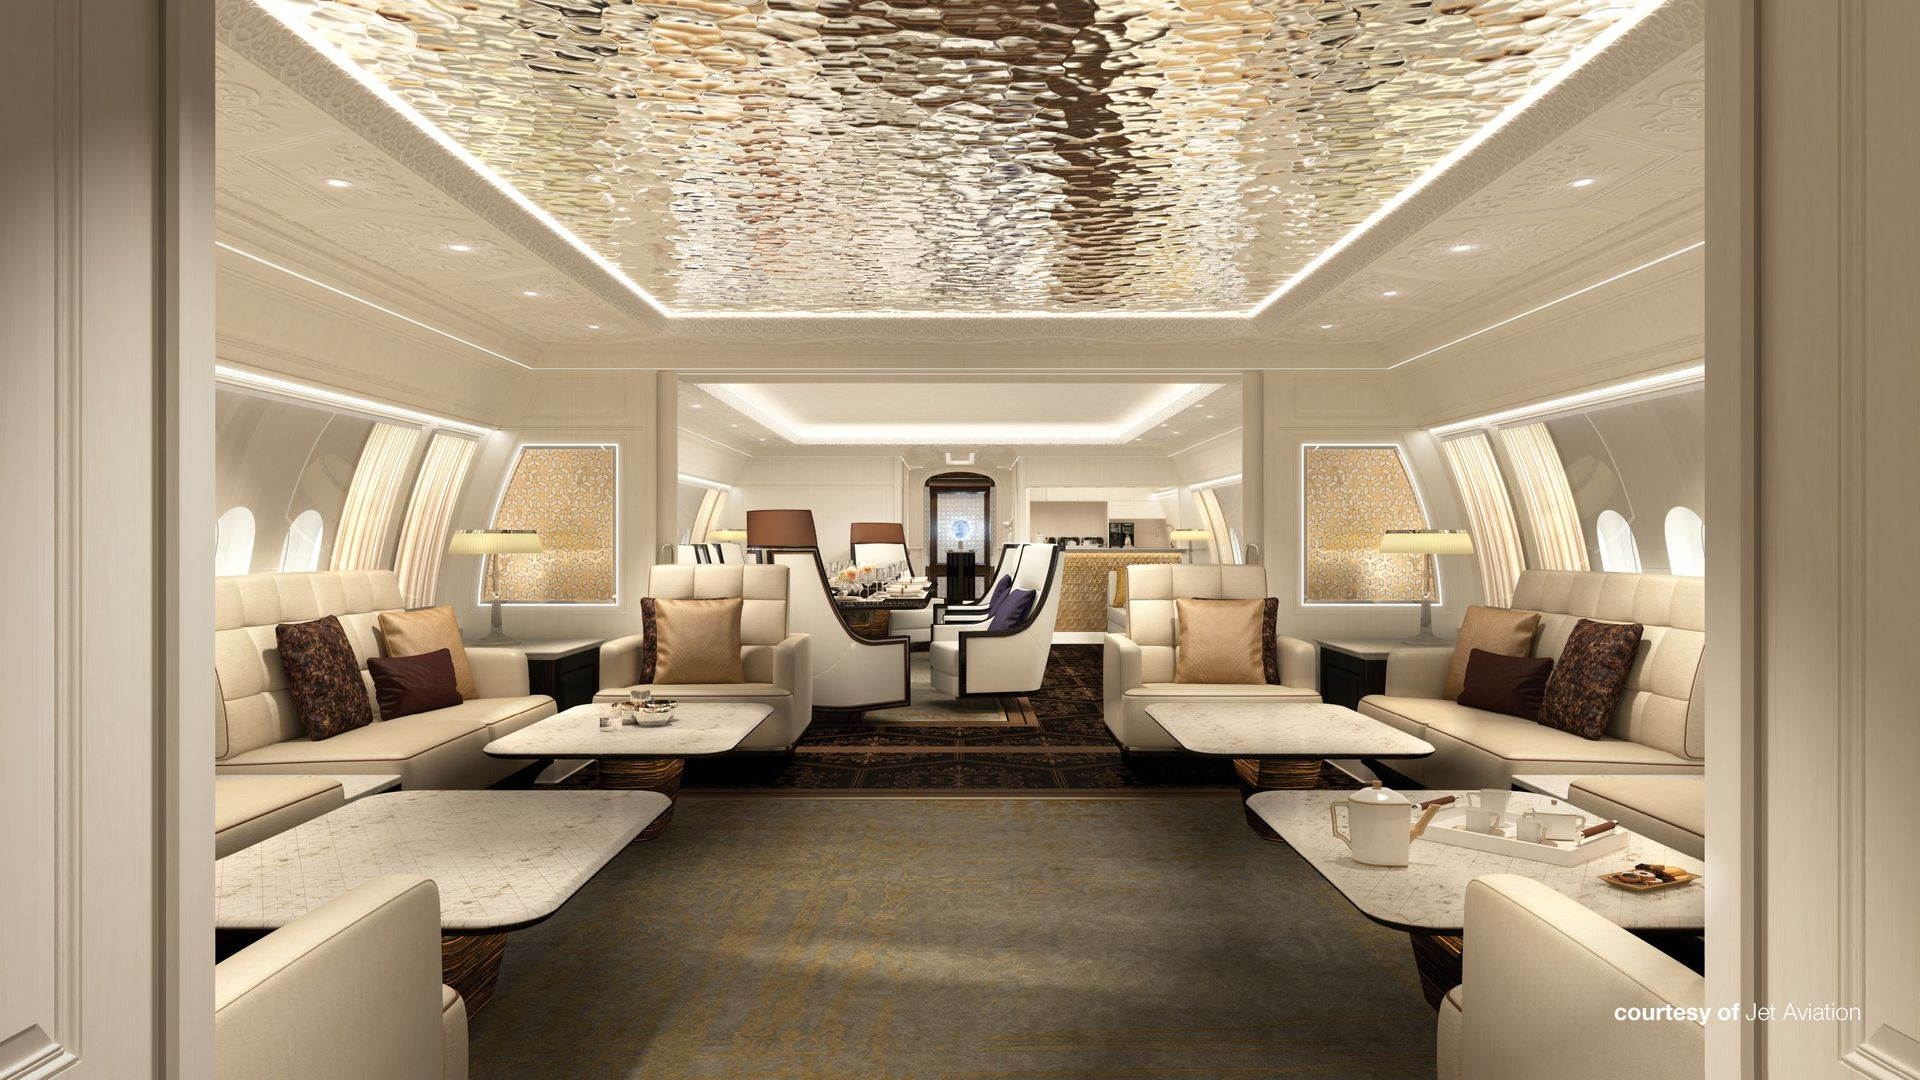 Boeing launches $620m 777X business jet that flies more than half way around the world